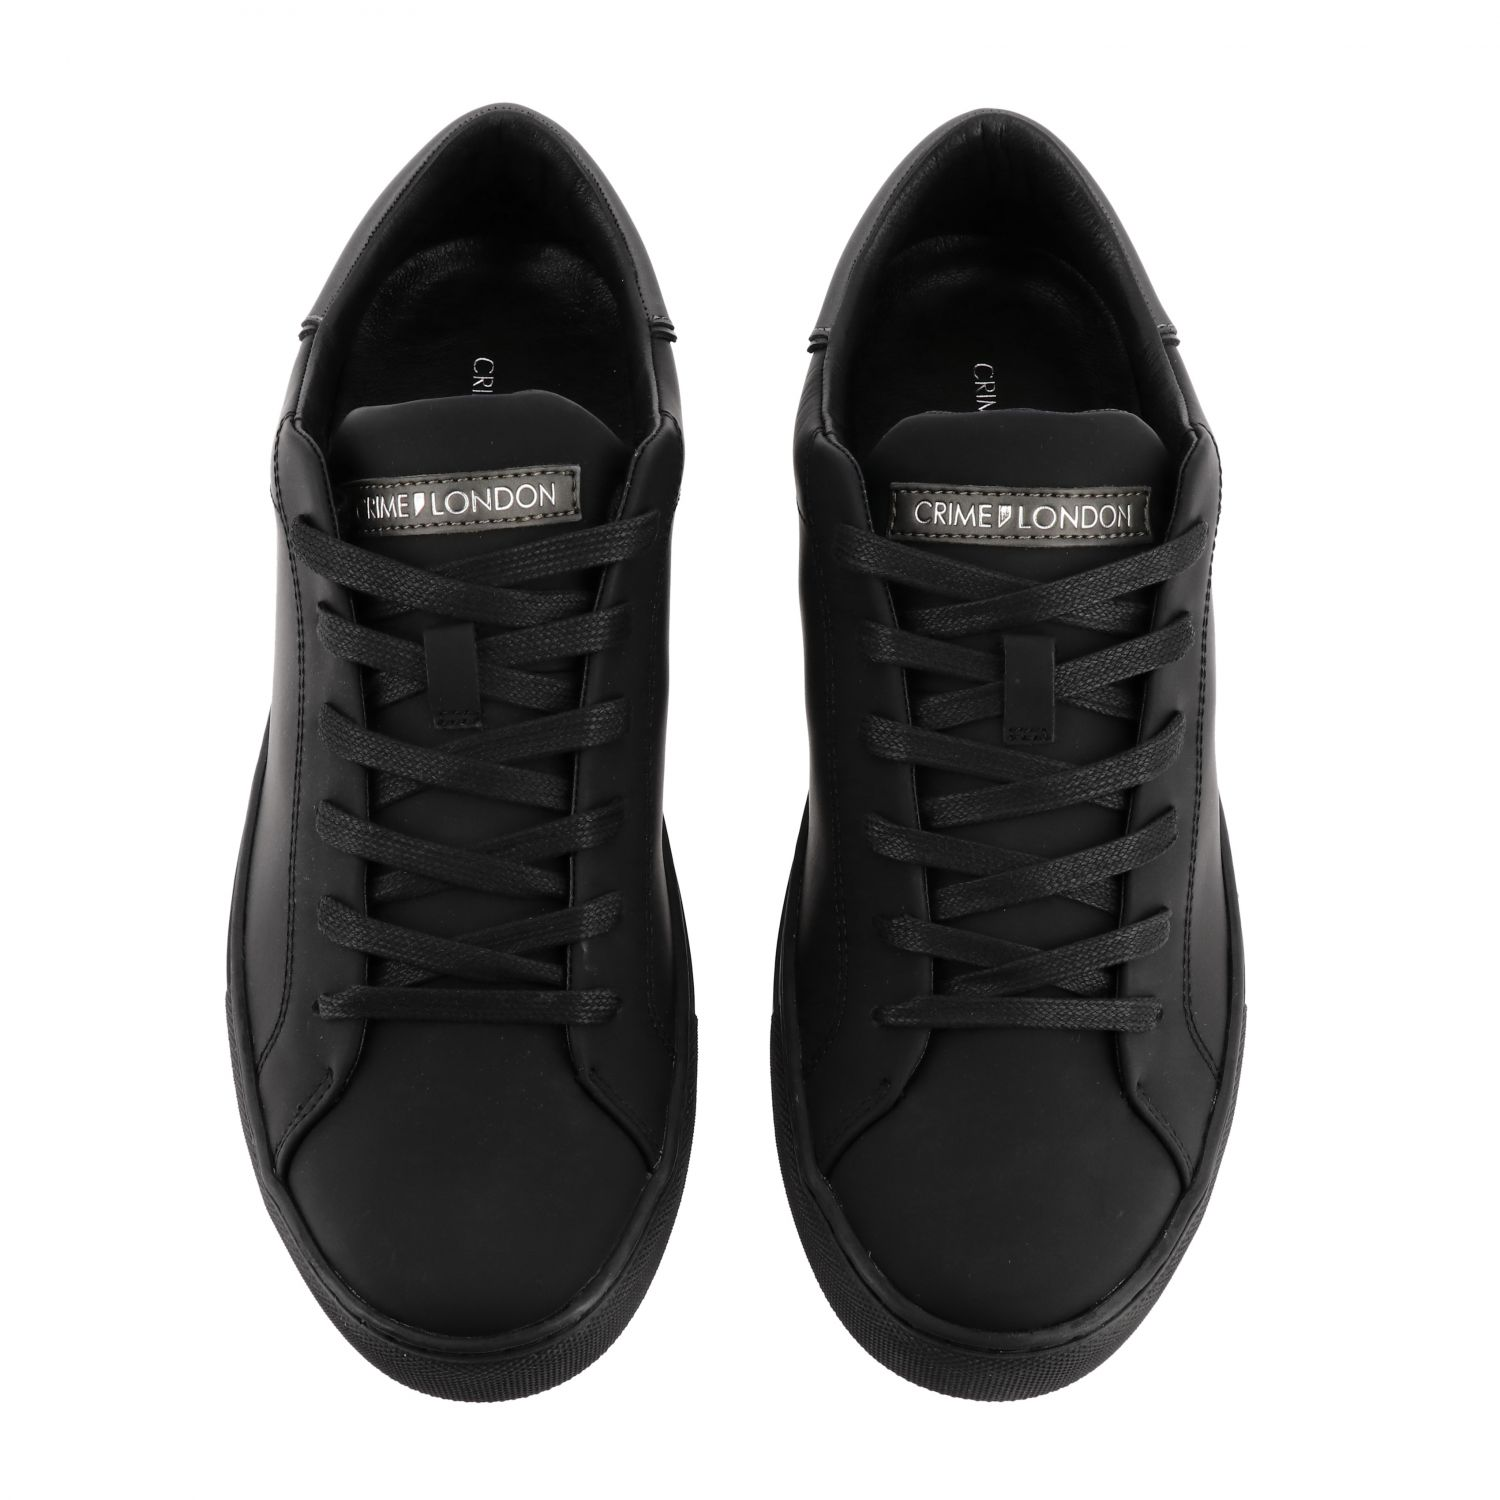 Sneakers Crime London: Shoes men Crime London black 3